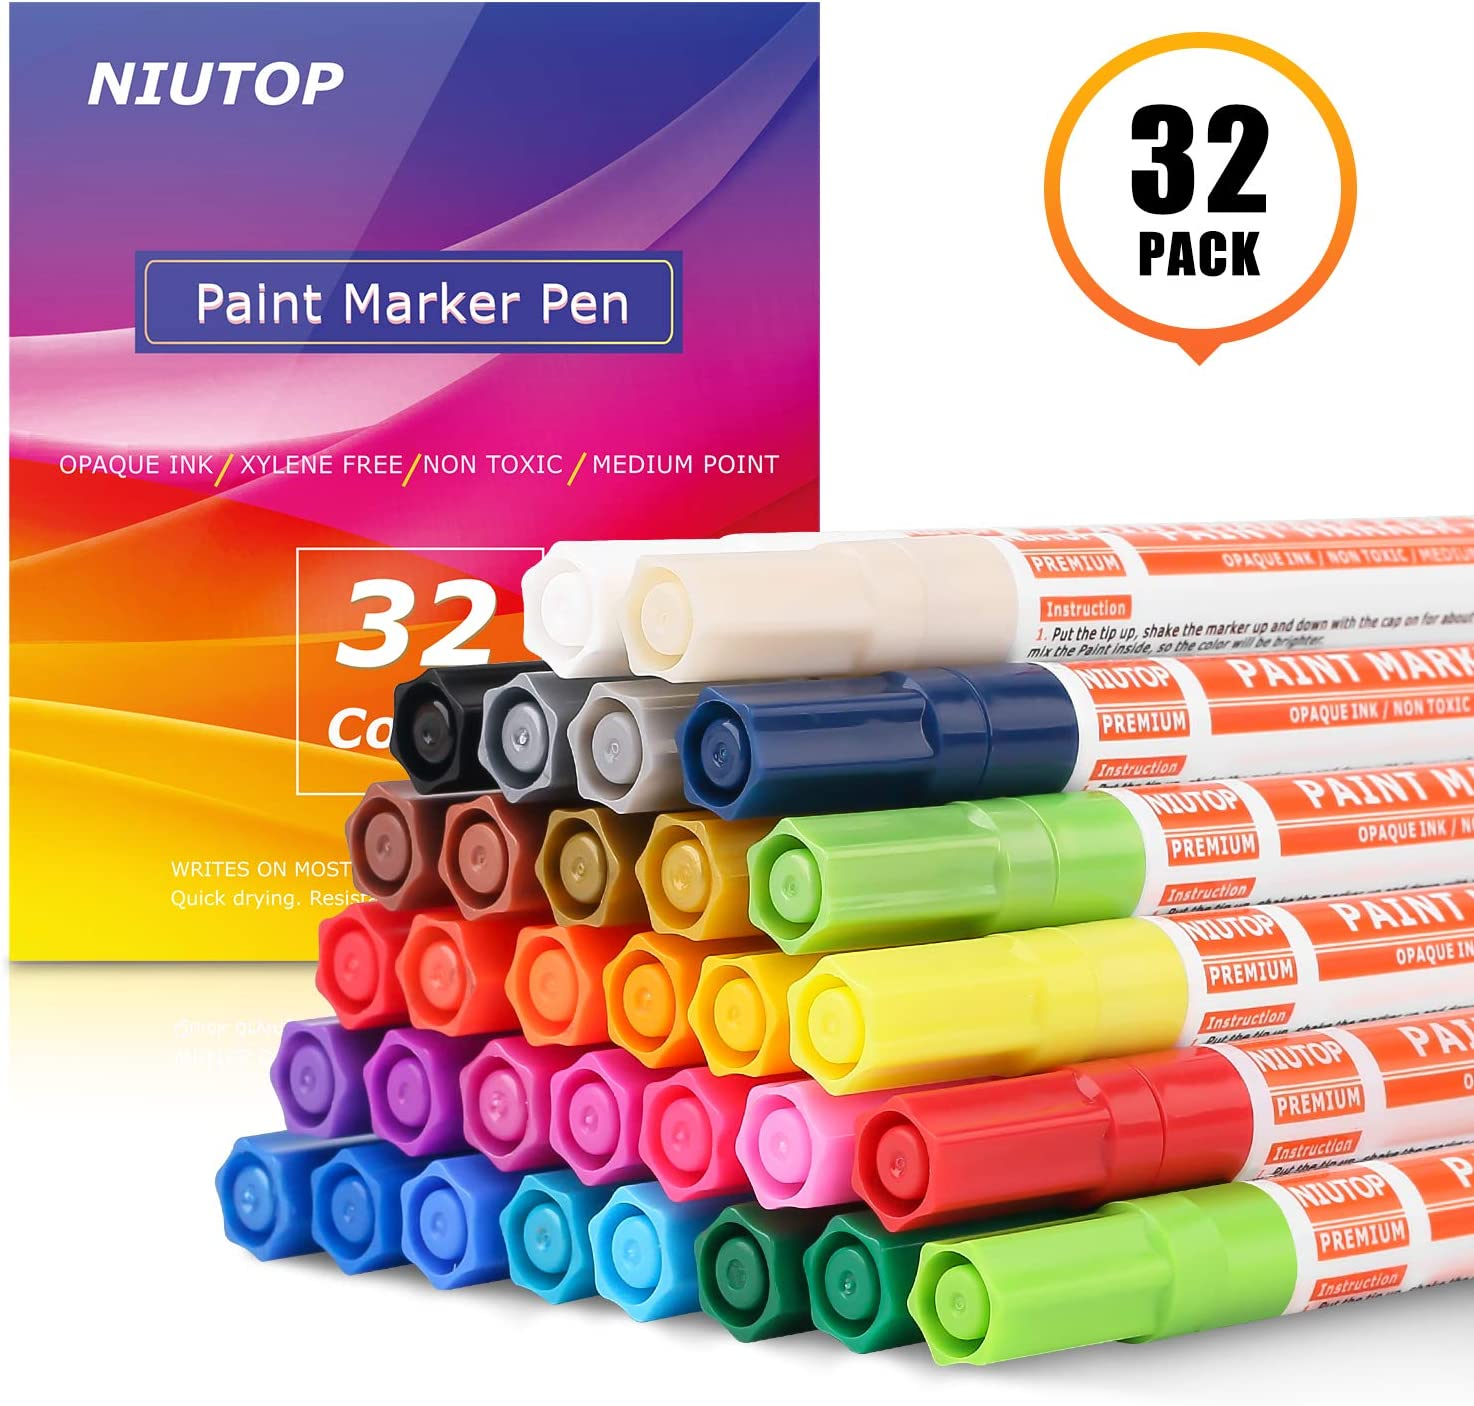 Paint Pens for Rocks, 32 Vibrant Colors Paint Markers Kit for Glass, Stone, Wood, Fabric, Metal, Ceramic, Rock & More, Medium Point, Oil Based Paint Marker, Quick-Dry, Great Christmas Gift Idea